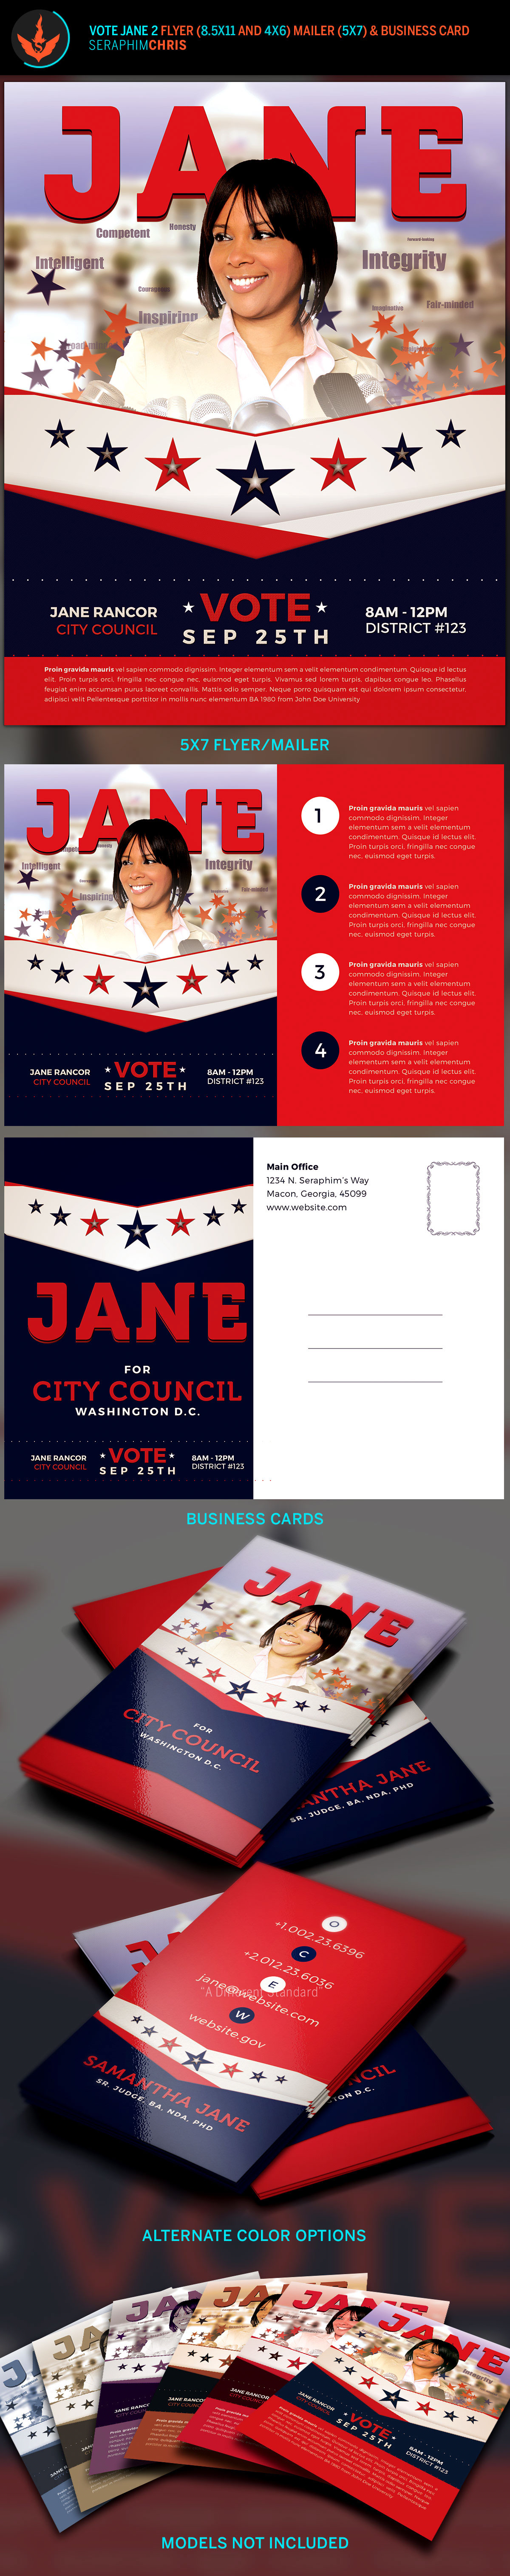 Vote Jane 2 - Political Flyer Template Kit on Behance